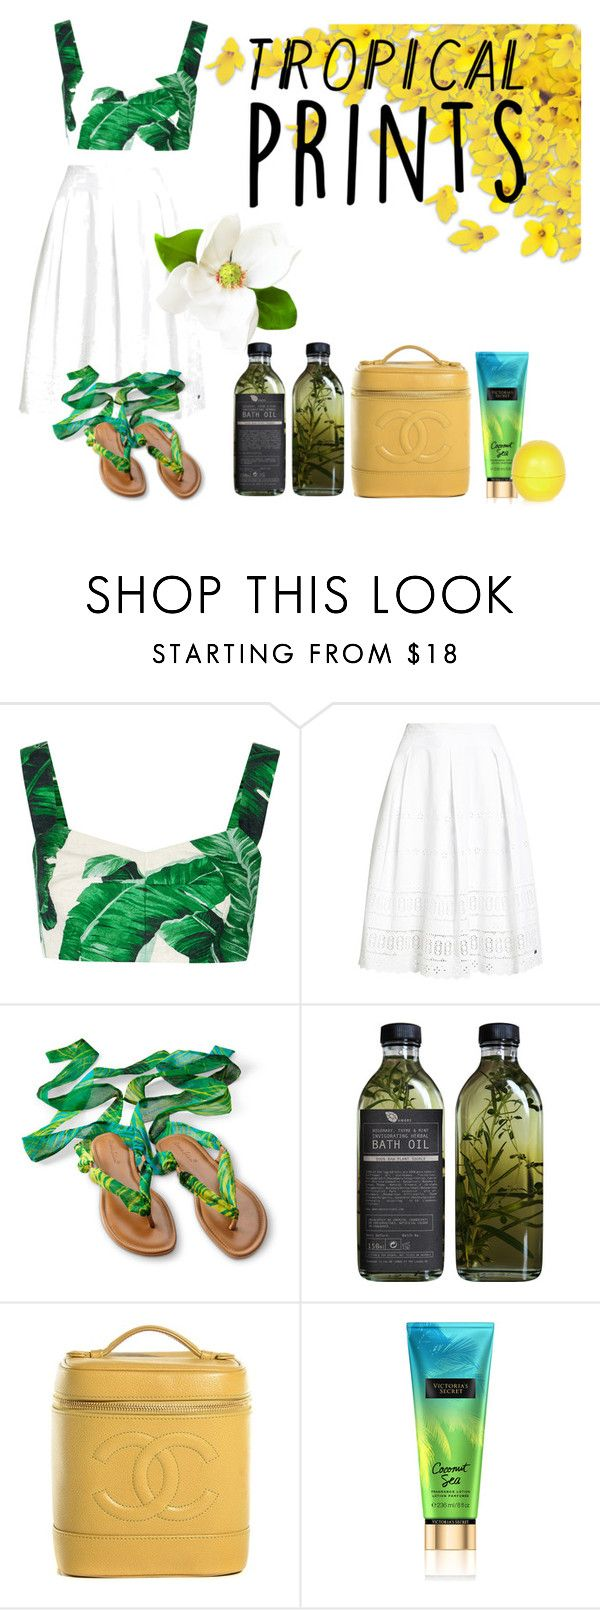 """""""Tropical prints"""" by lynn-frank ❤ liked on Polyvore featuring Dolce&Gabbana, Superdry, AMBRE, Chanel and River Island"""